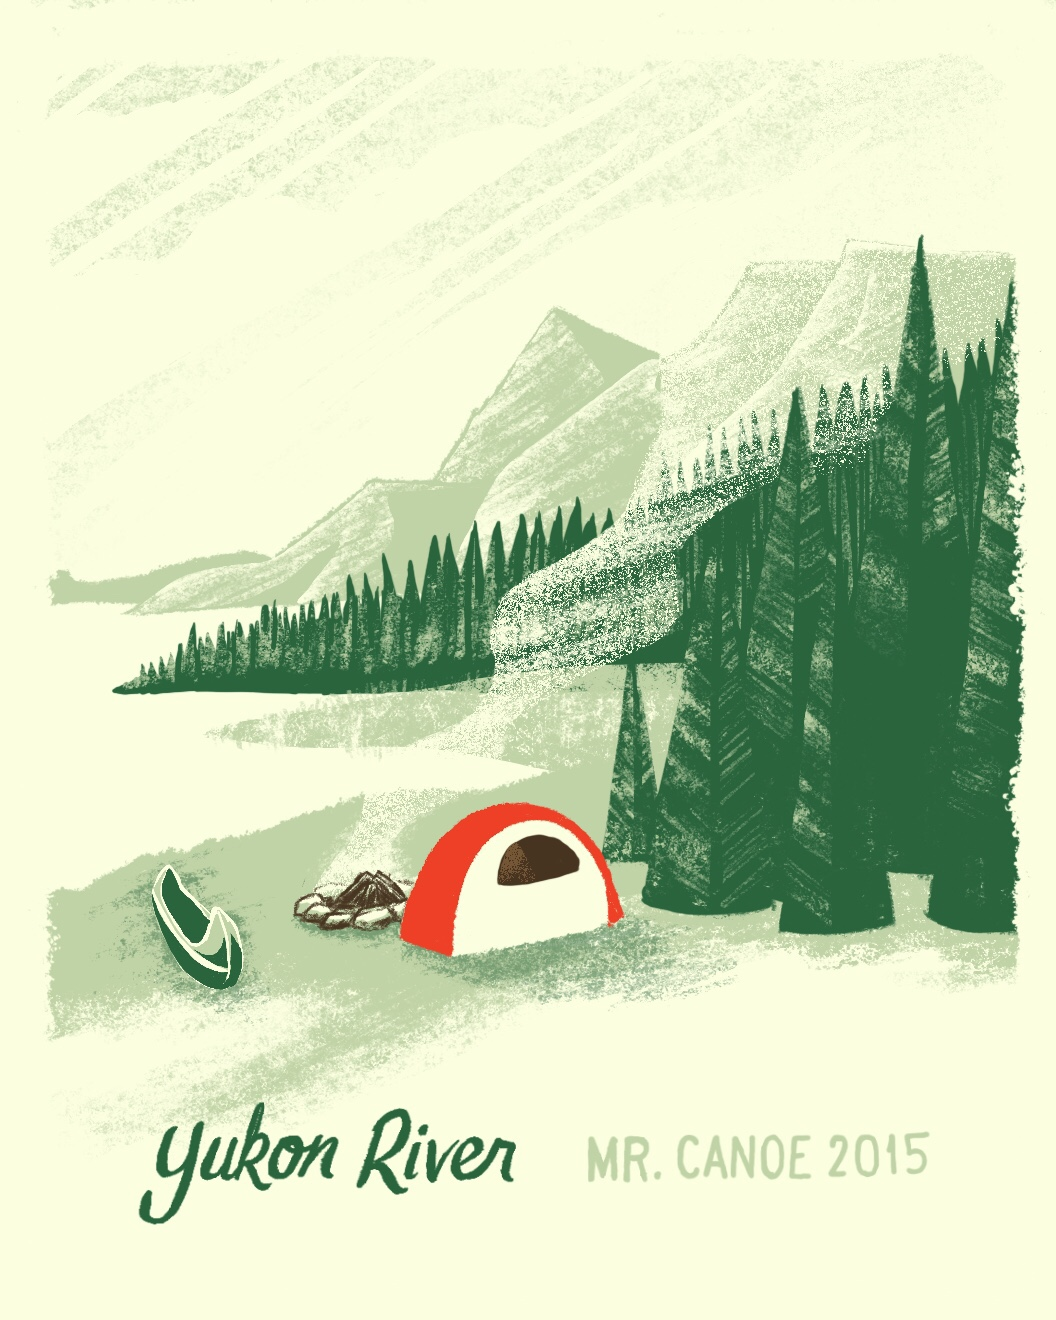 Yukon River canoe trip illustration